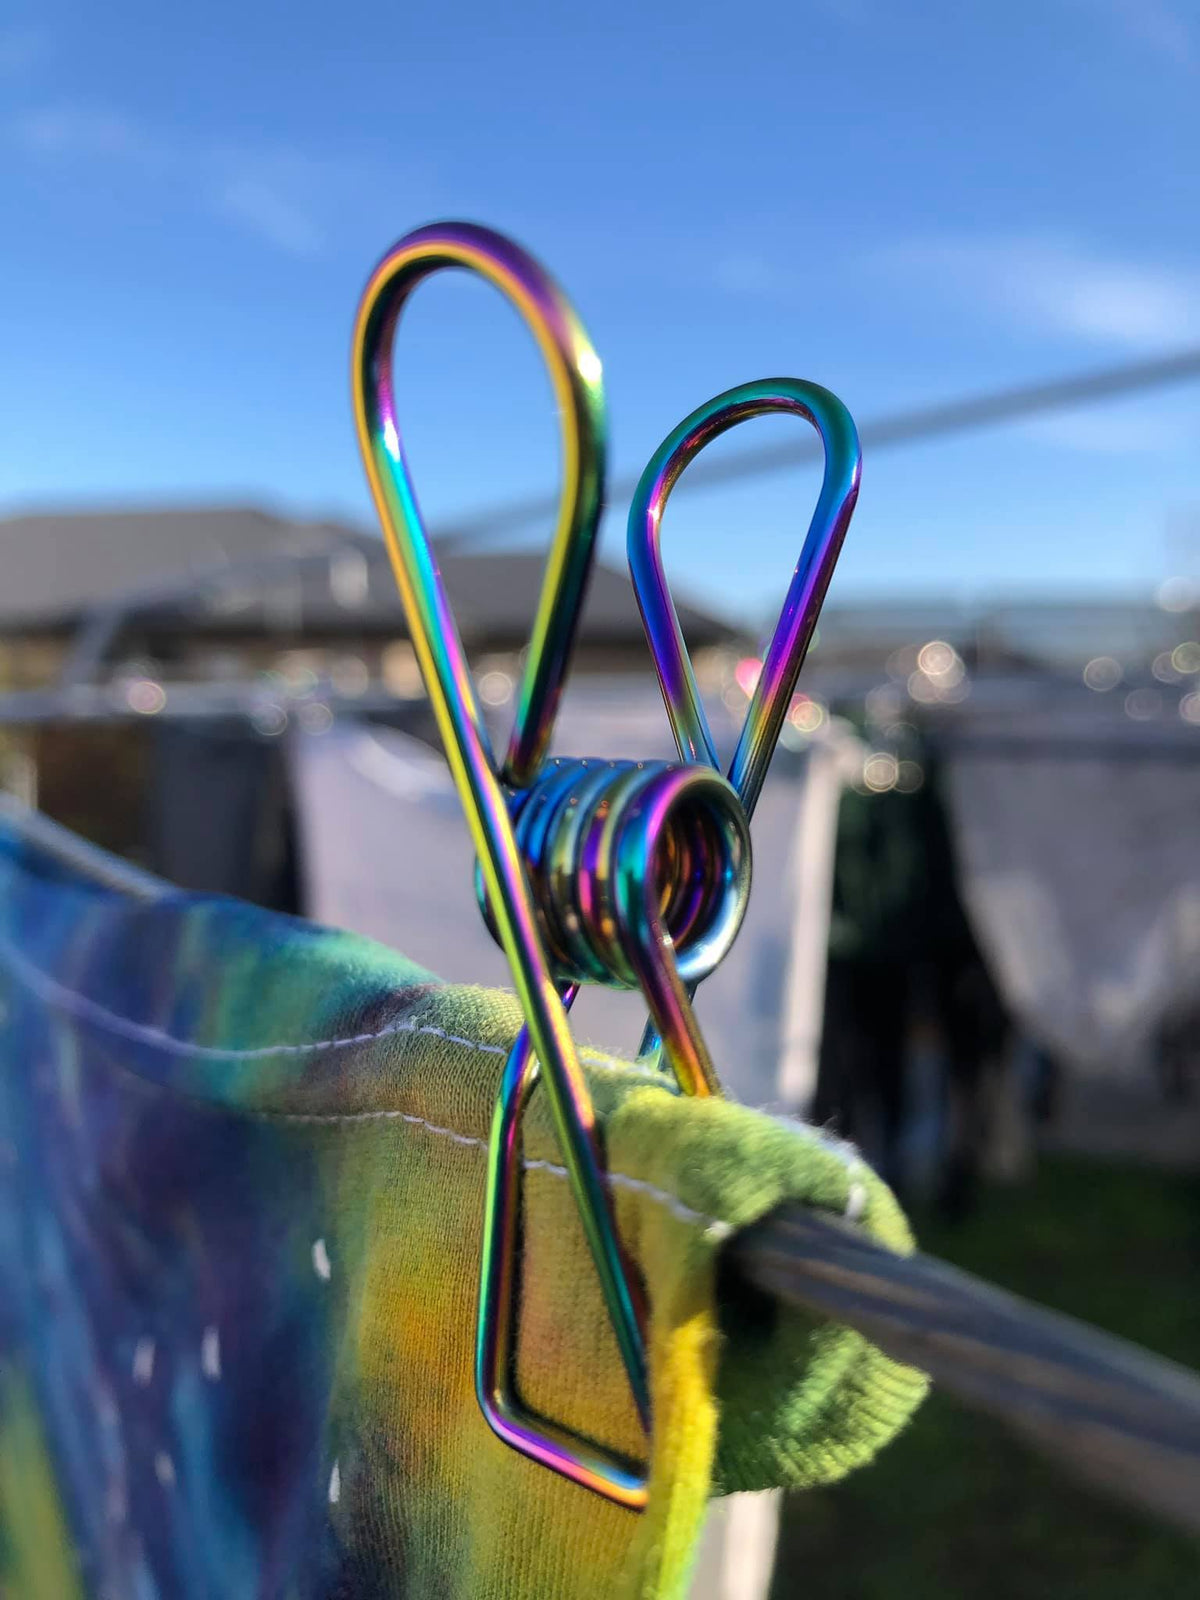 Rainbow stainless steel Pegs nz